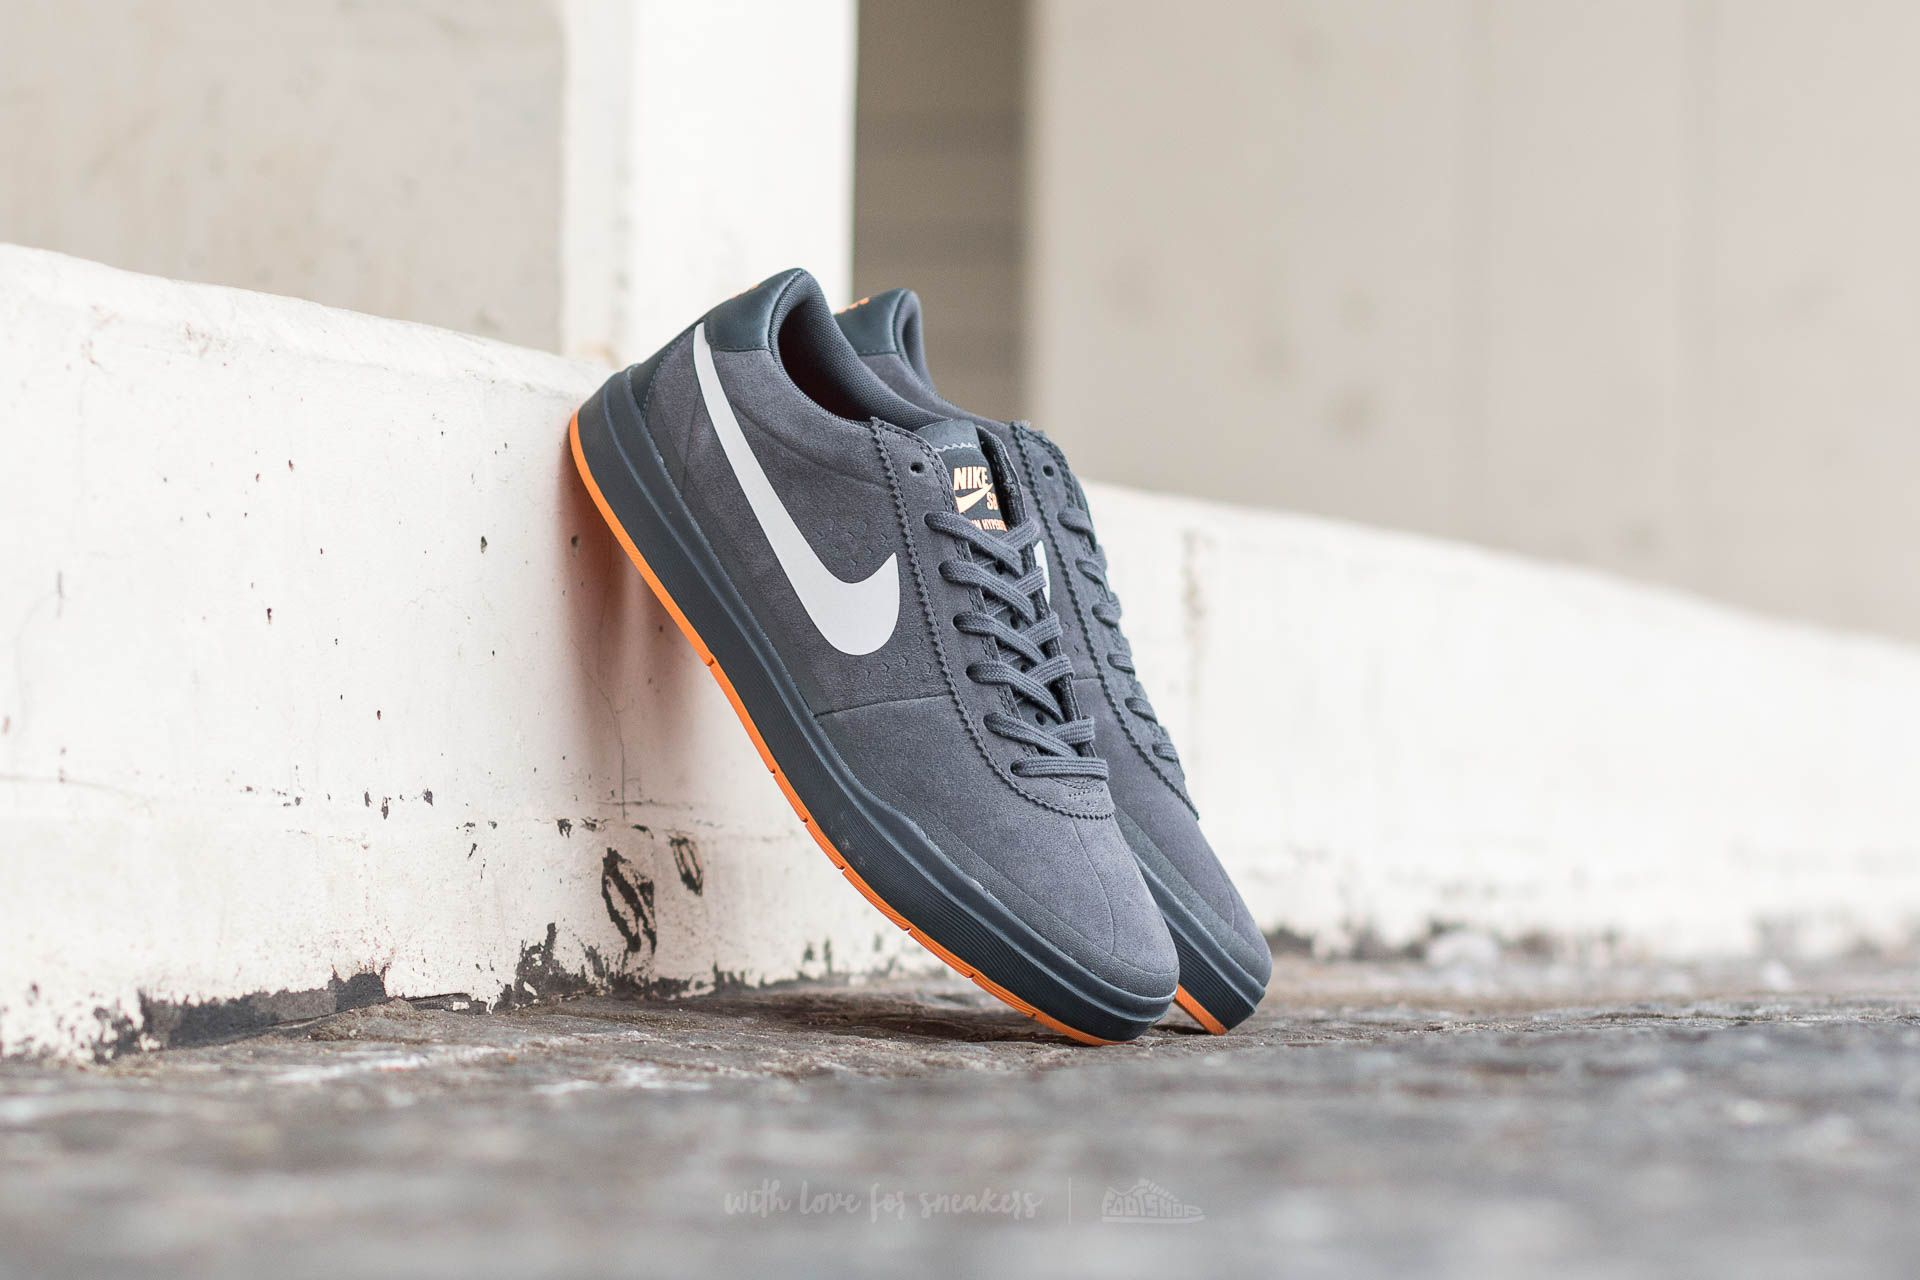 Nike Bruin SB Hyperfeel XT Anthracite White Clay Orange | Footshop